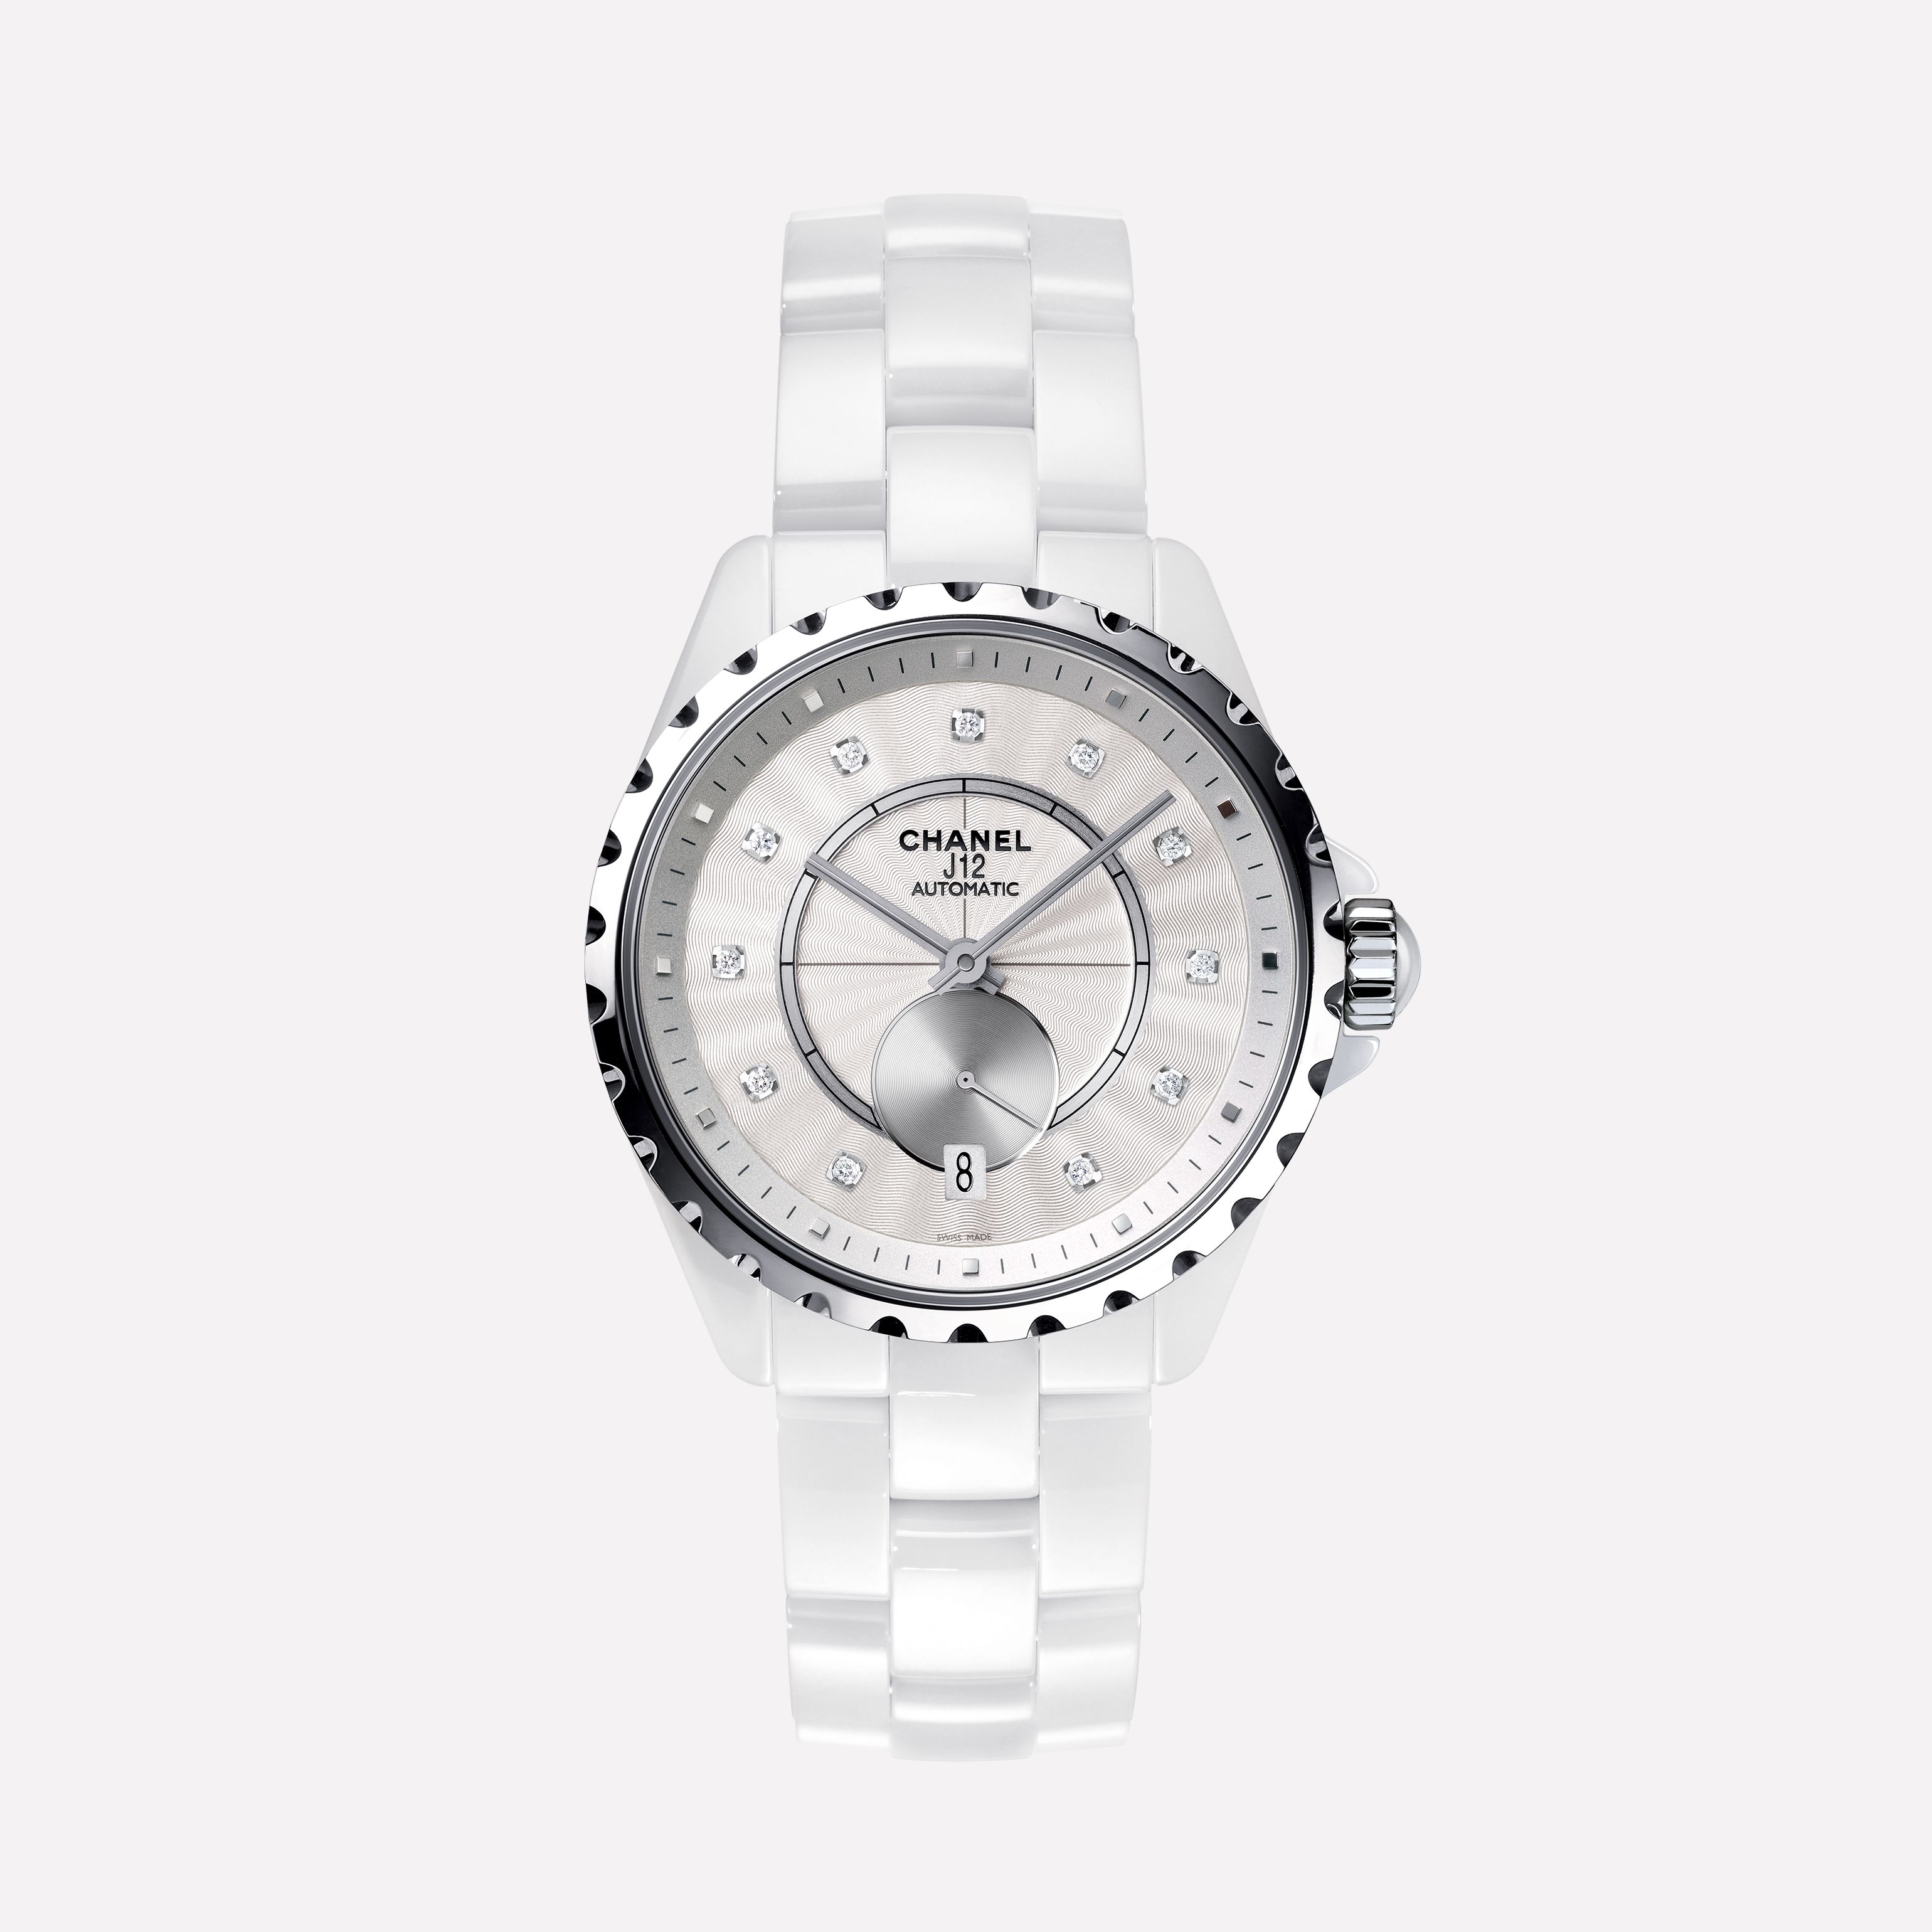 Replica Chopard Lady Watches